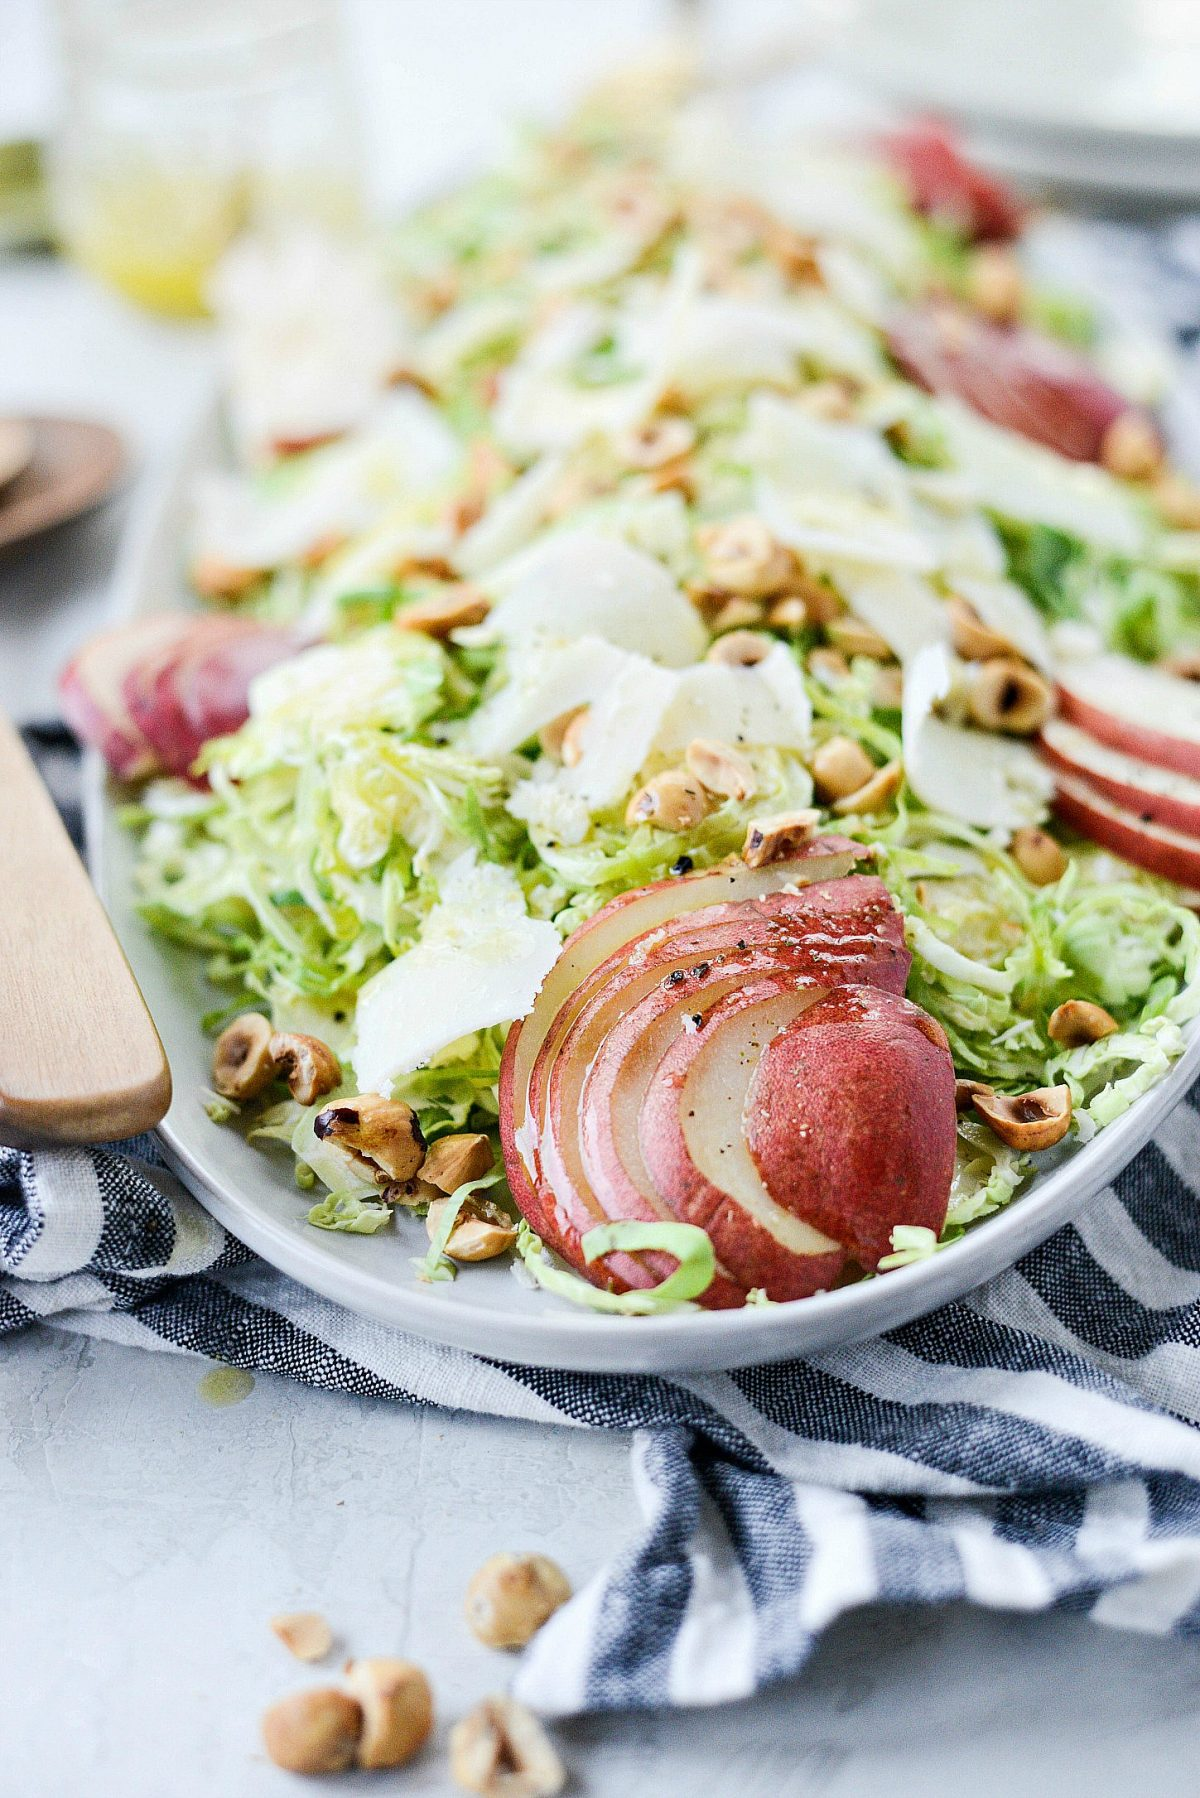 Shaved-Brussels-Sprout-Salad-with-Pear-Parmesan-and-Hazelnuts-l-SimplyScratch.com-14